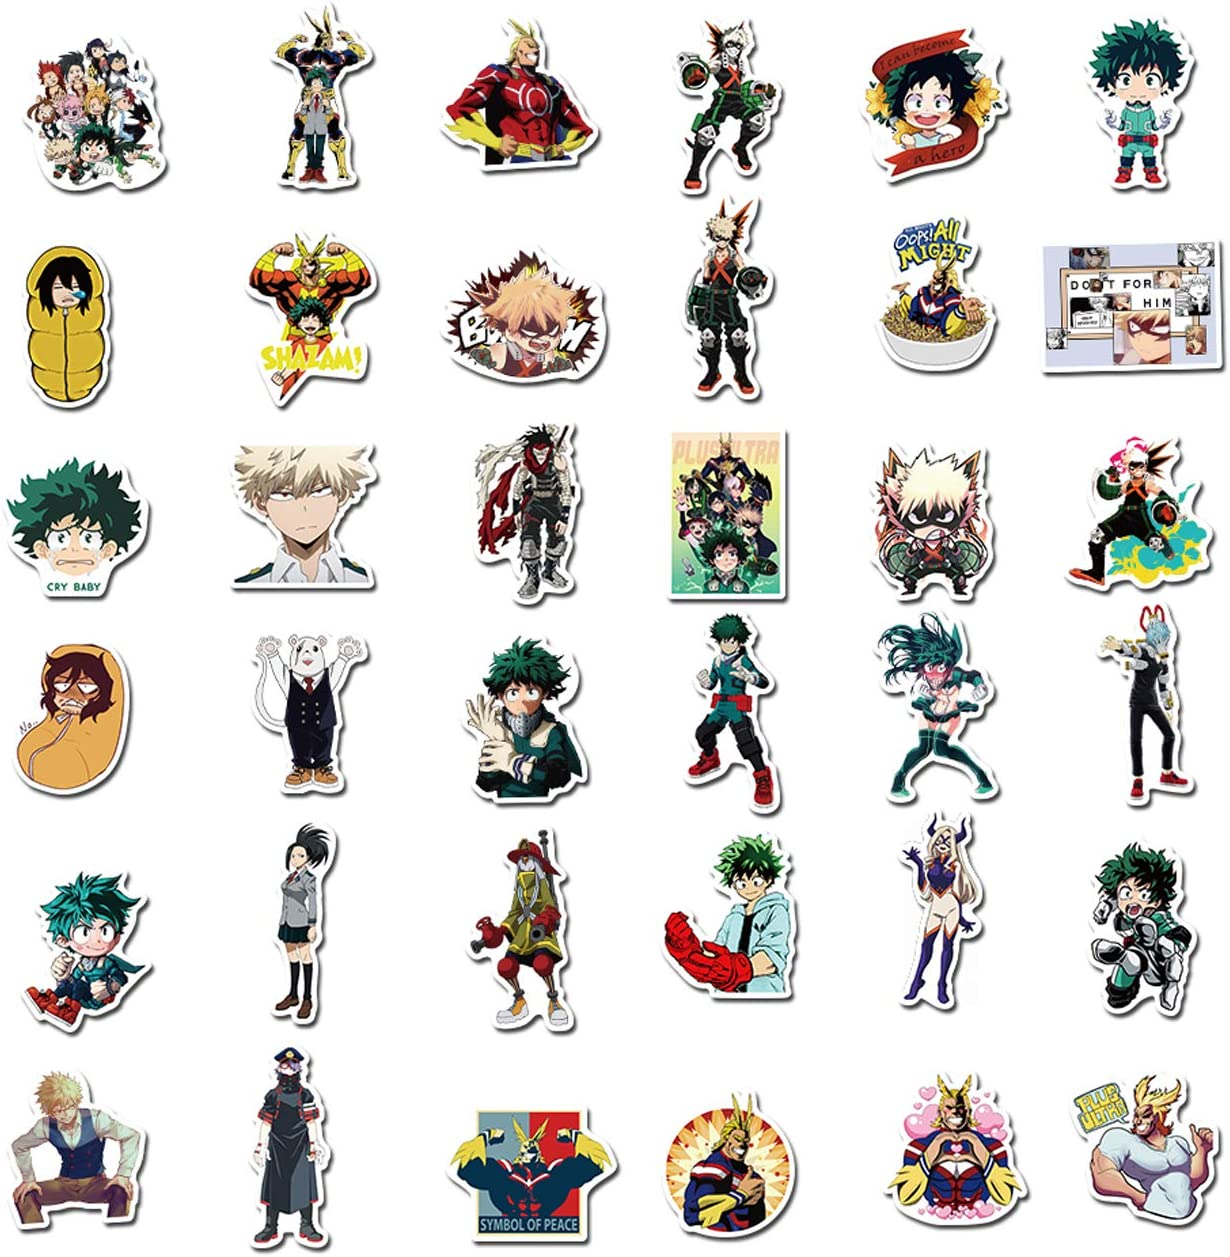 My Hero Academia Sticker 50pcs Cool Anime Stickers for Computers Laptop Skateboard Stickers for Kids Teens Adults Laptop Skateboard Guitar Luggage Vinyl Decal Stickers Packs